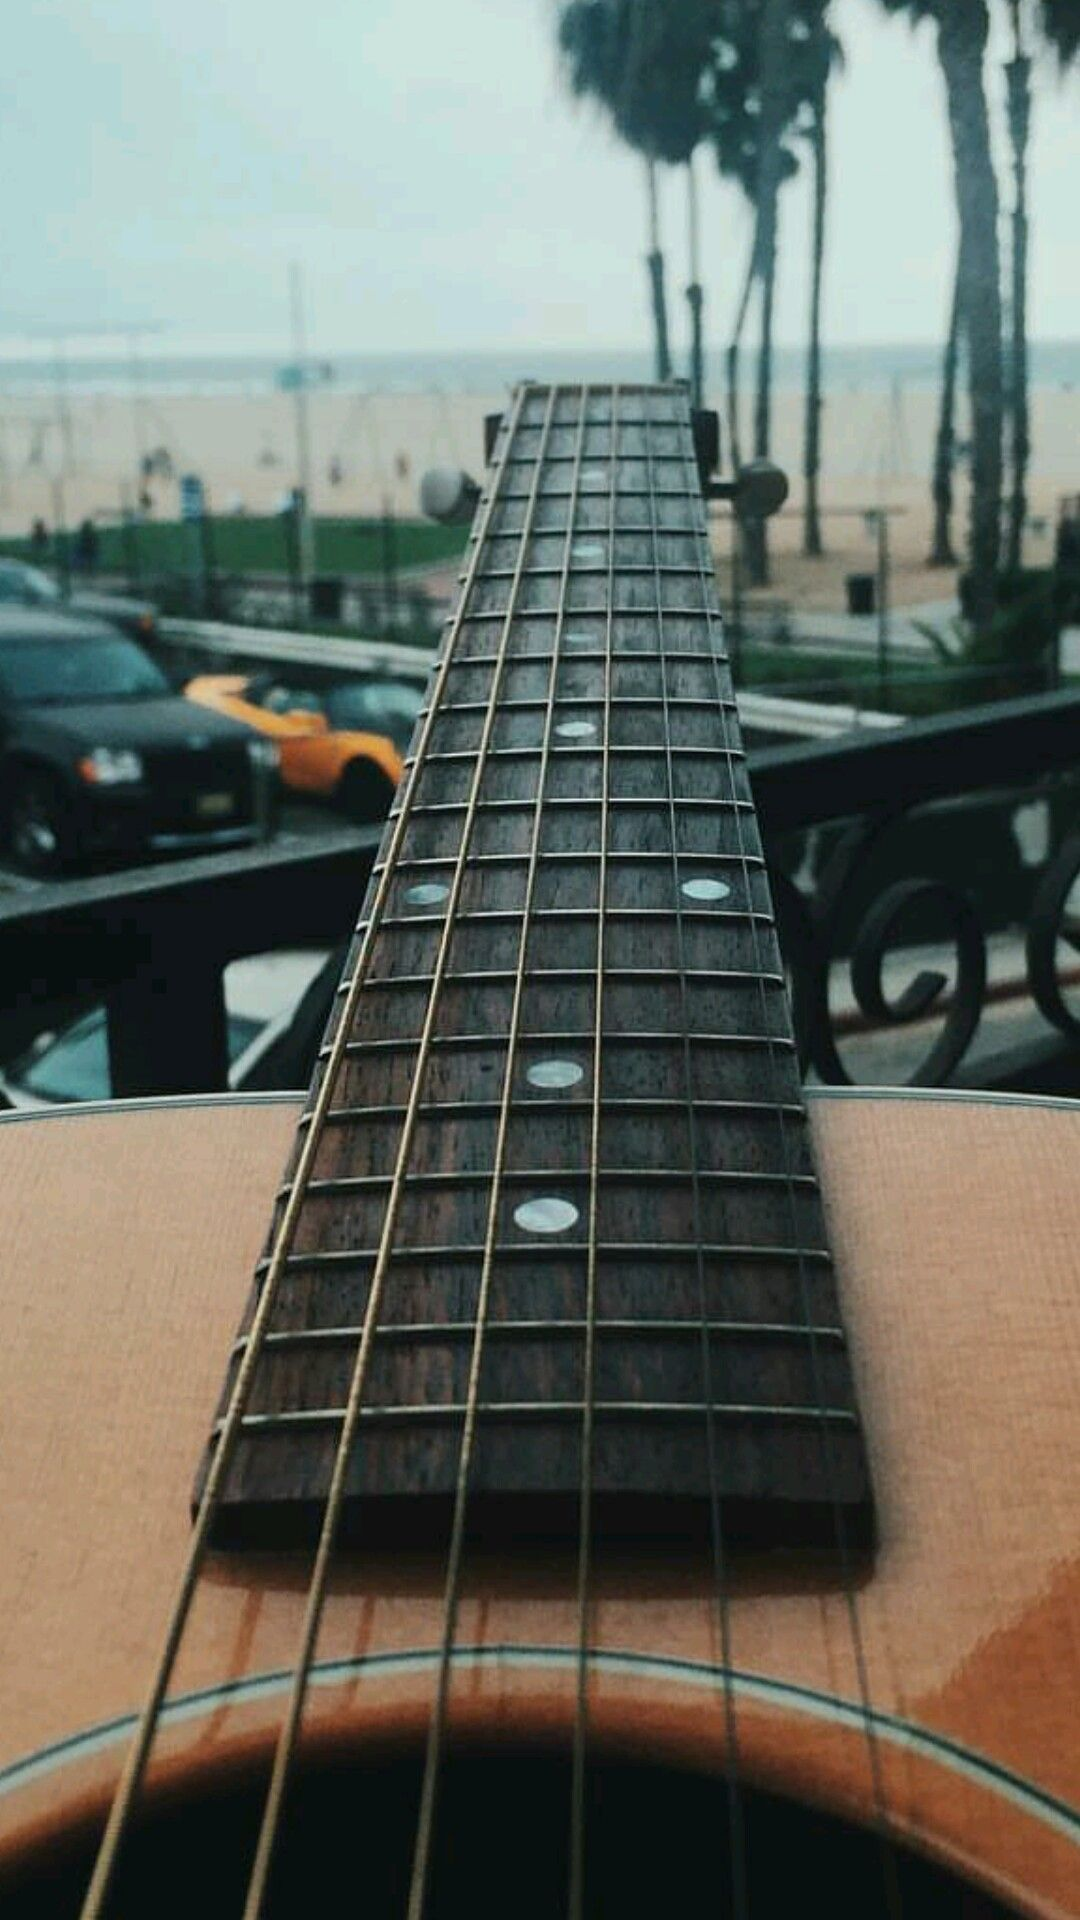 Guitar Wallpaper From Alex Aiono Post On Instagram Acoustic Photography Tattoo